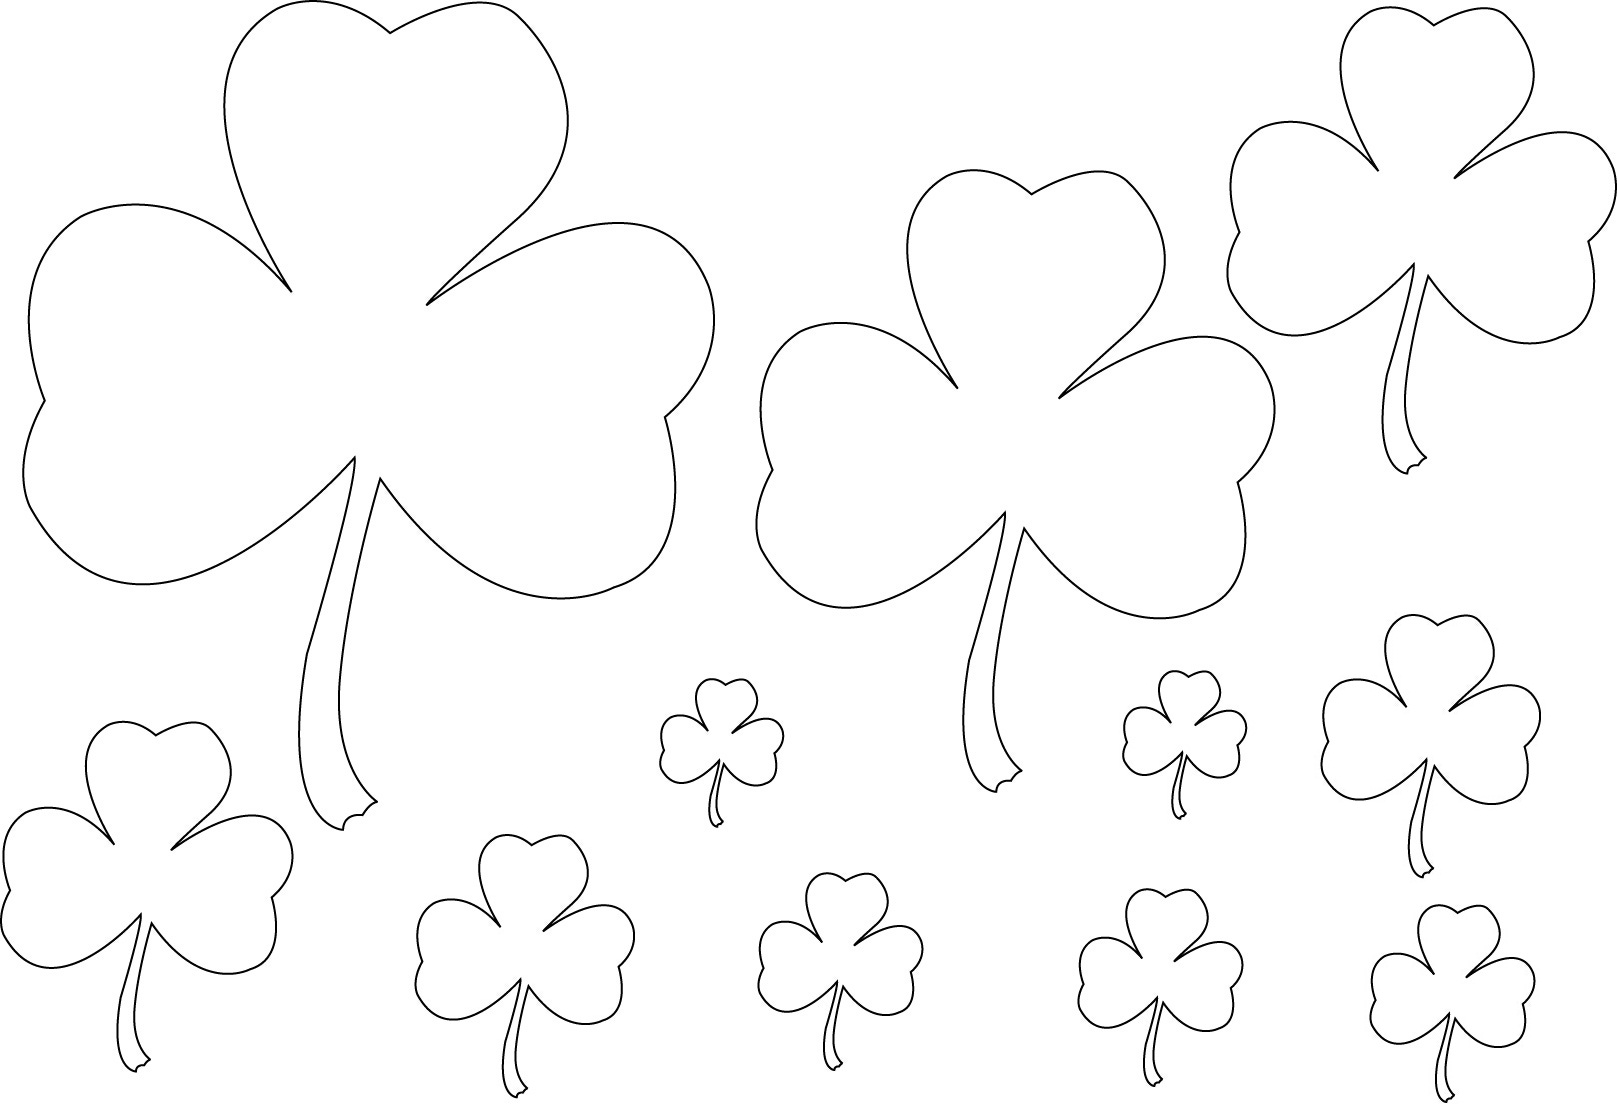 graphic regarding Printable Shamrock Images called No cost Printable Shamrock Coloring Webpages For Children